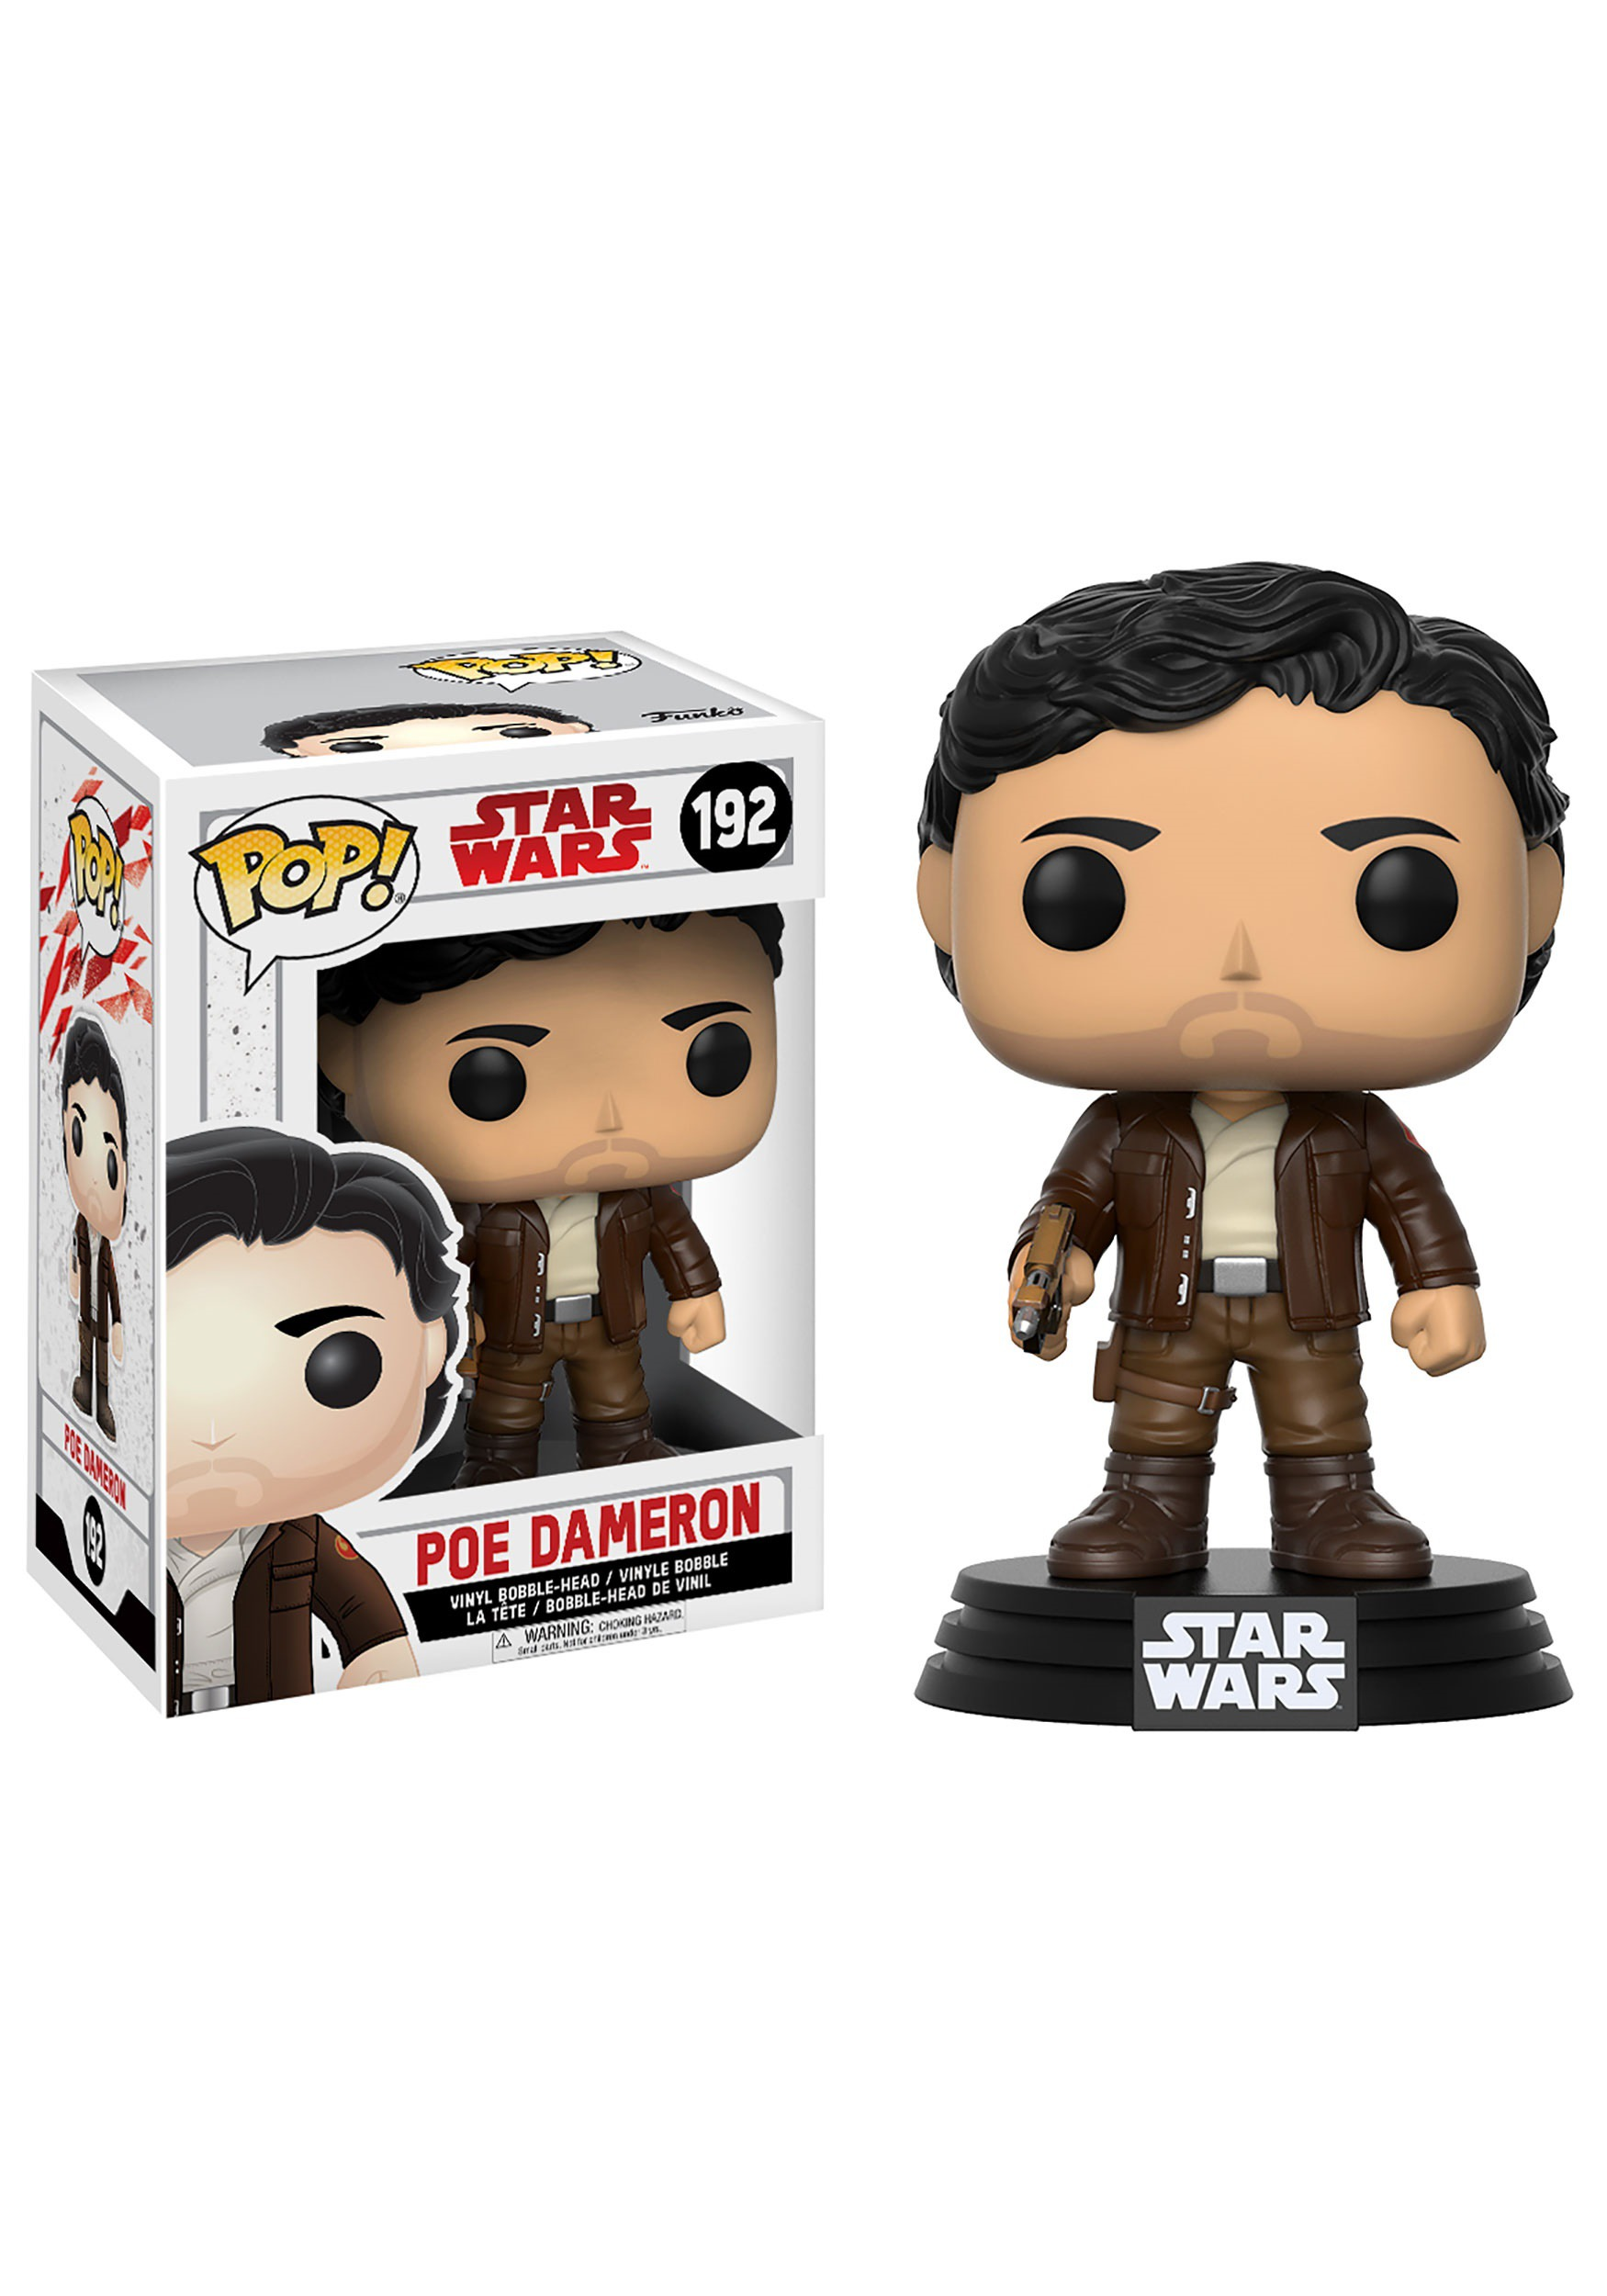 Star Wars The Last Jedi Funko POP Poe Dameron Bobblehead Figure FN14747